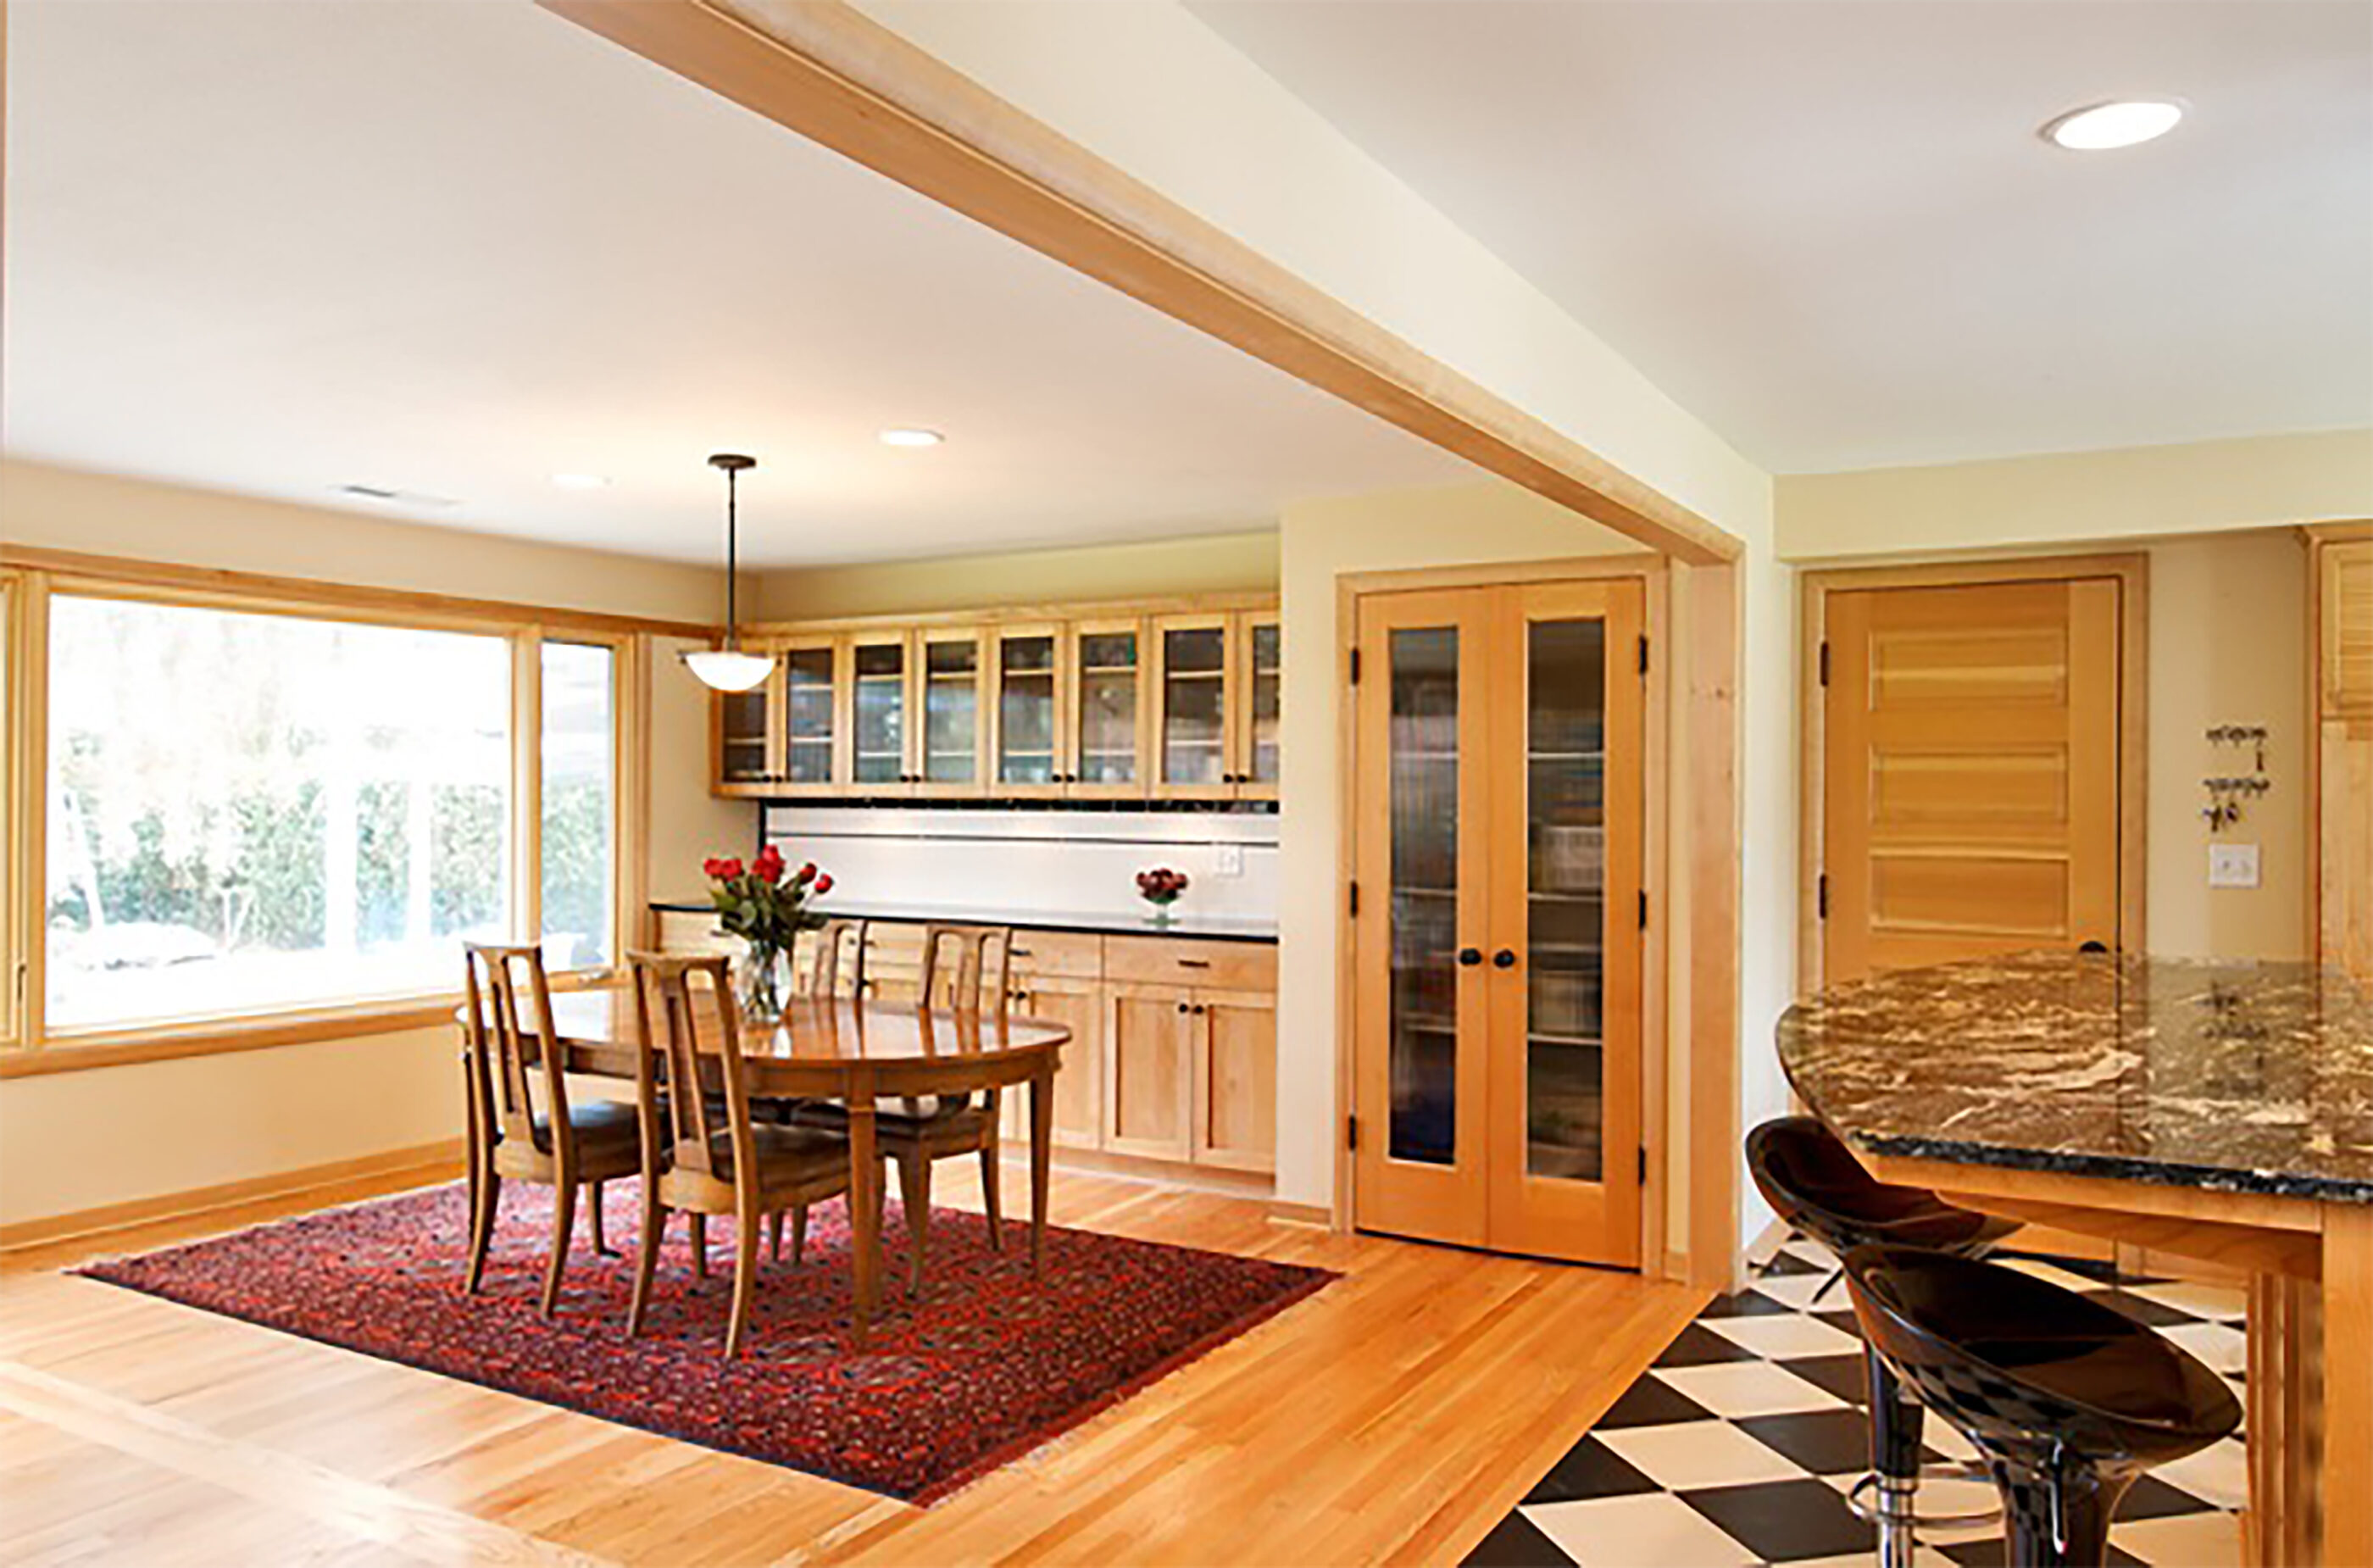 The dining area features custom built-in cabinetry for additional storage which also serves as a buffet area.